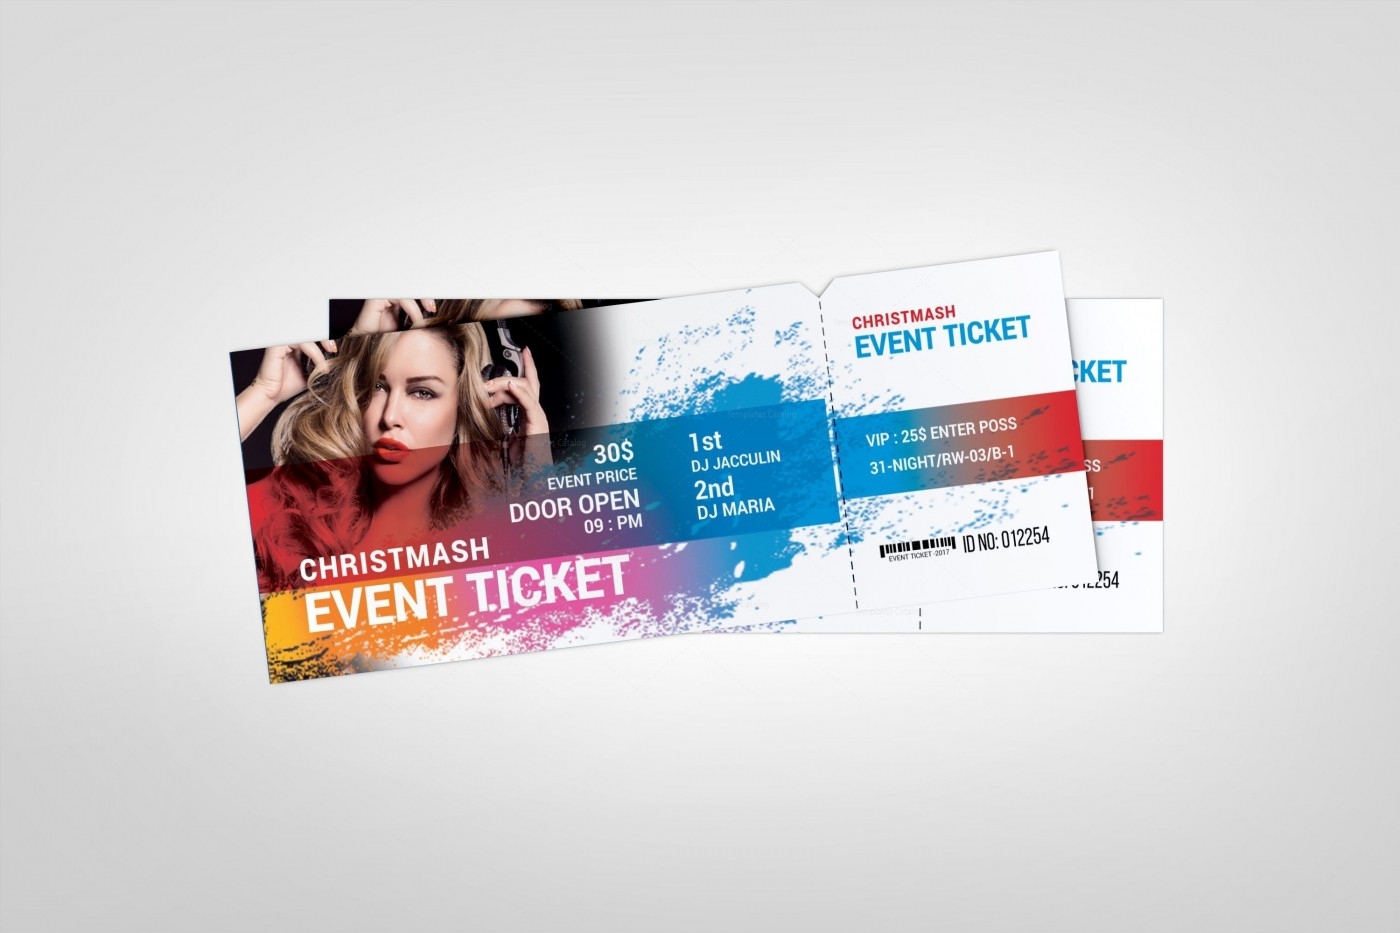 000 Top Concert Ticket Template Google Doc Example 1400